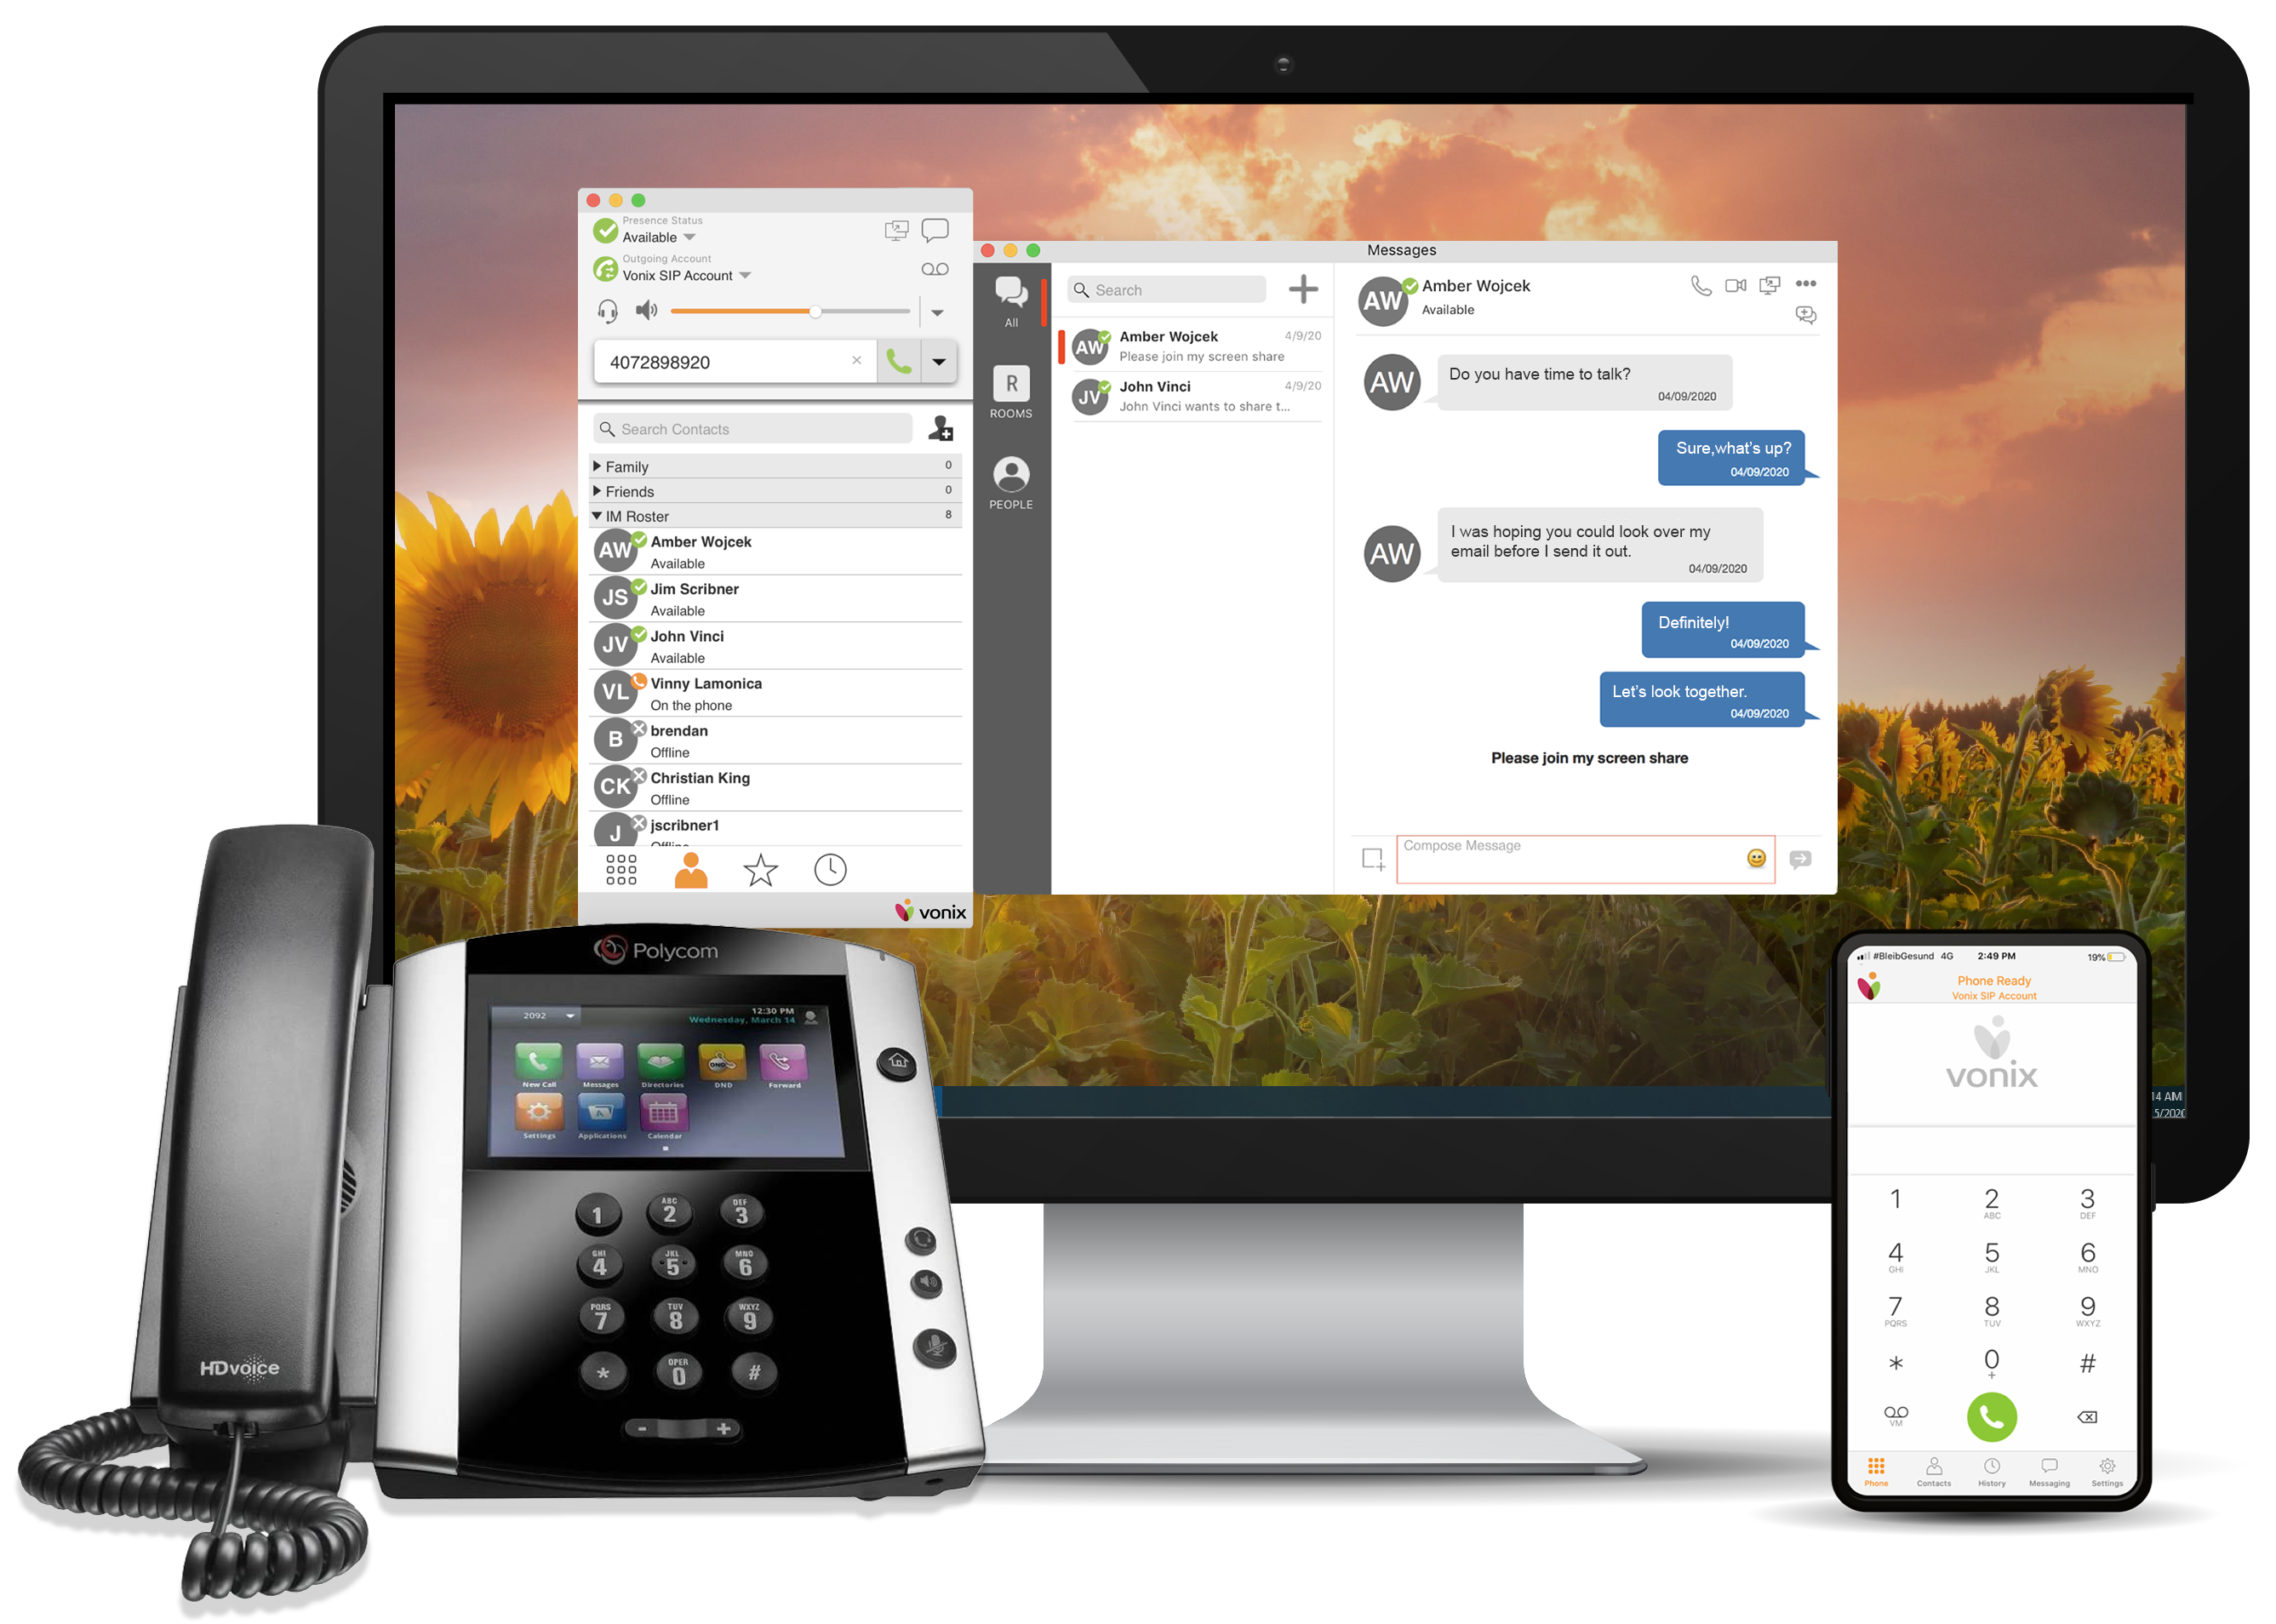 Desktop, Mobile App, and Polycom Phone